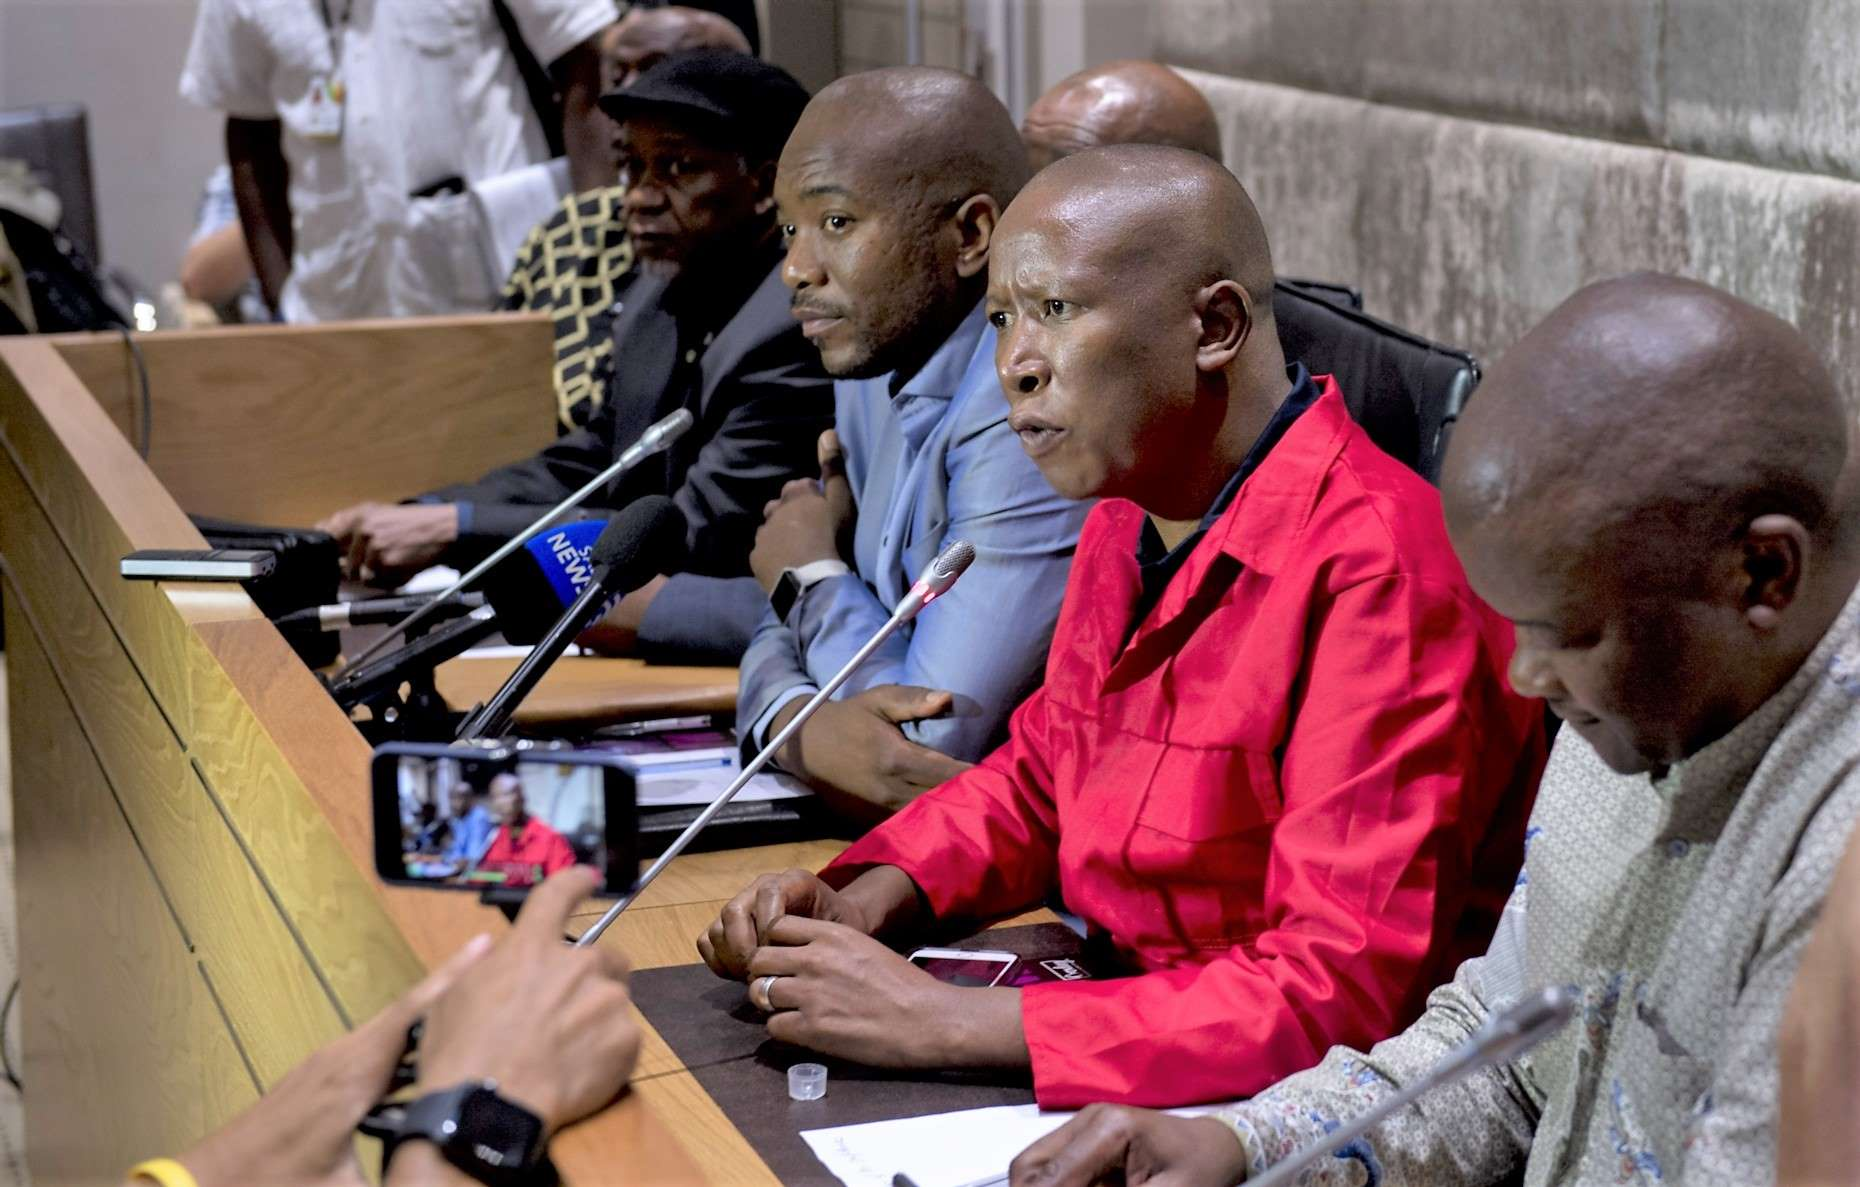 Julius Malema and the peoples bae, the best bromance in South Africa